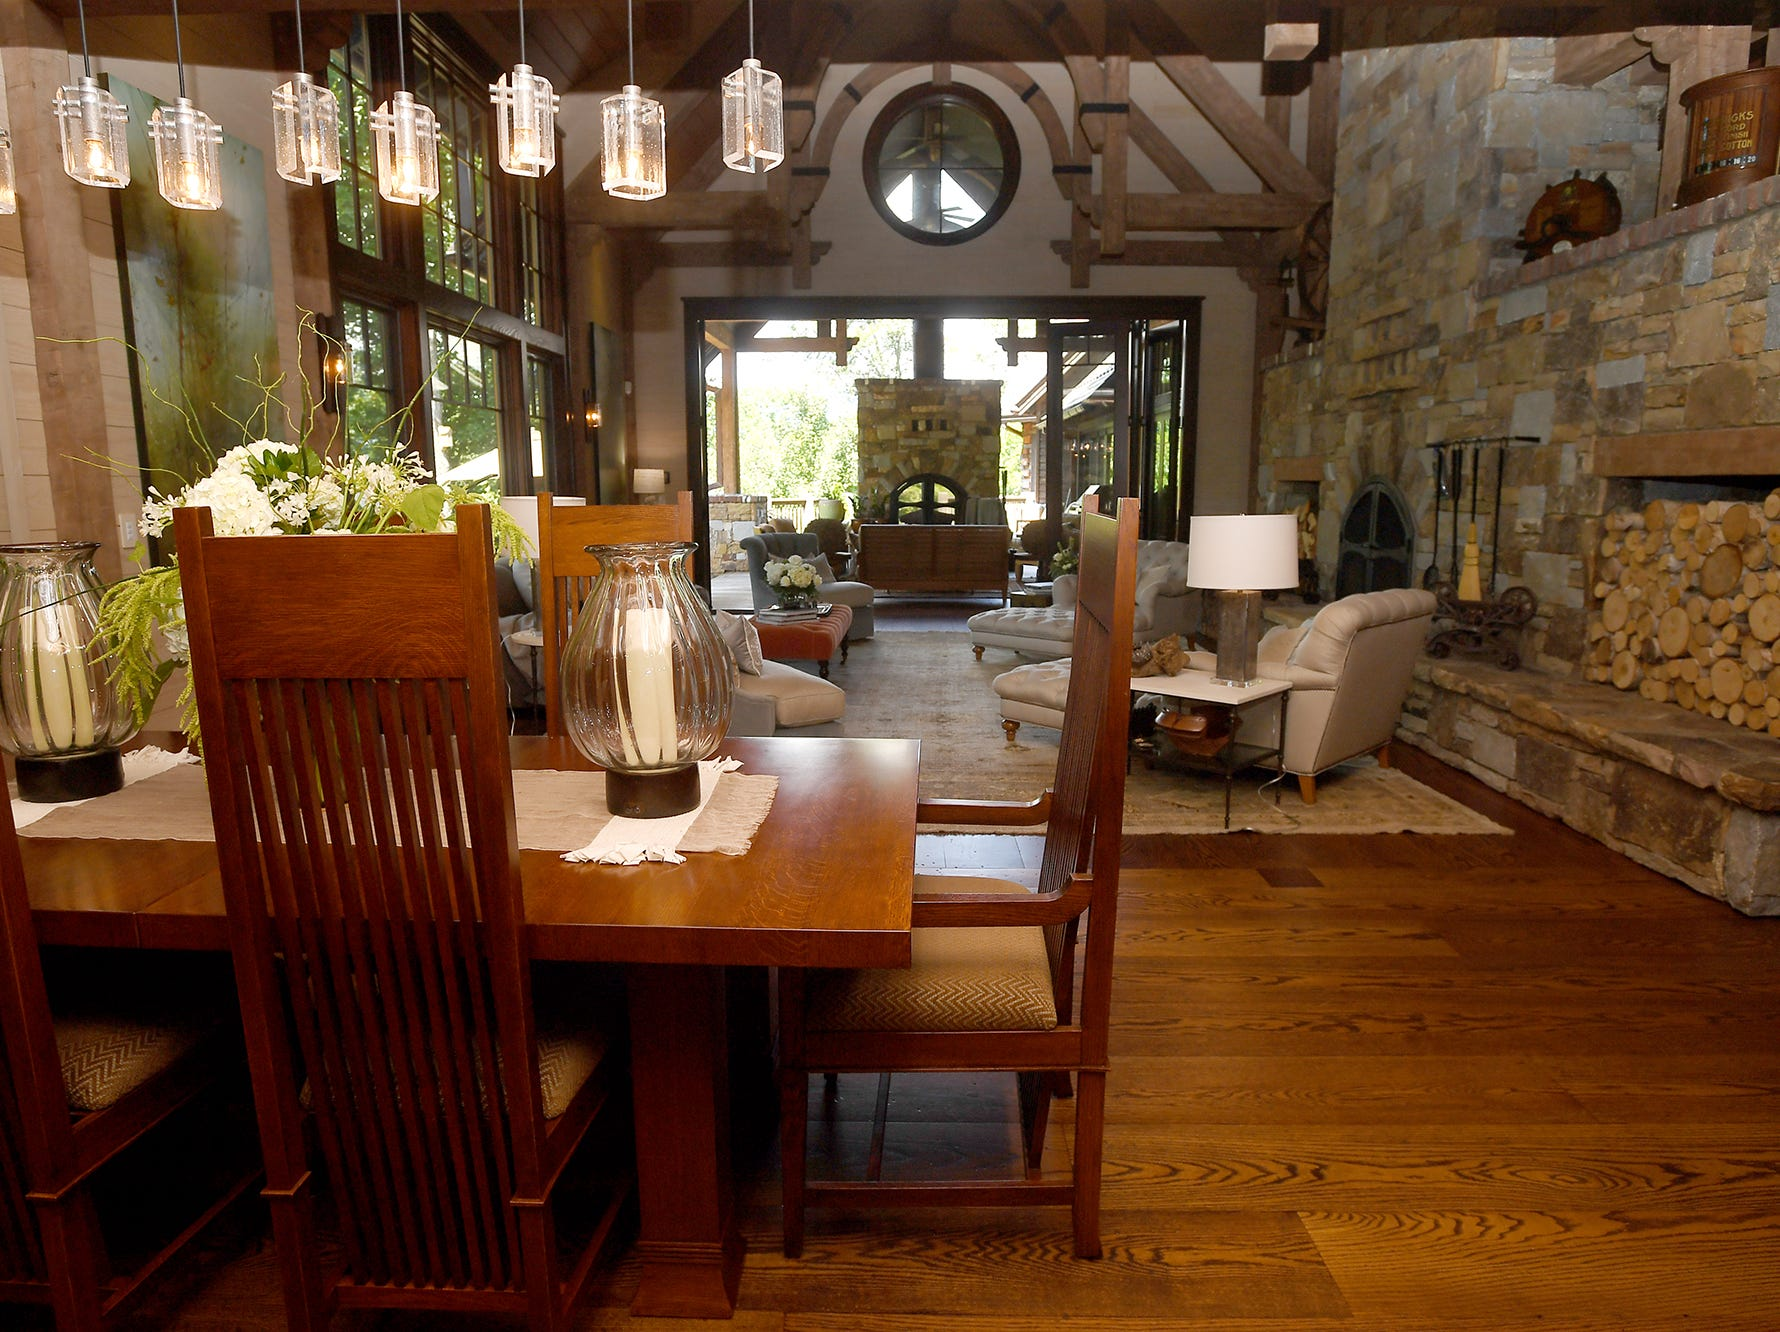 A view from the kitchen inside the Balsam Mountain Preserve home of Bobbye and Ken Bowdon.